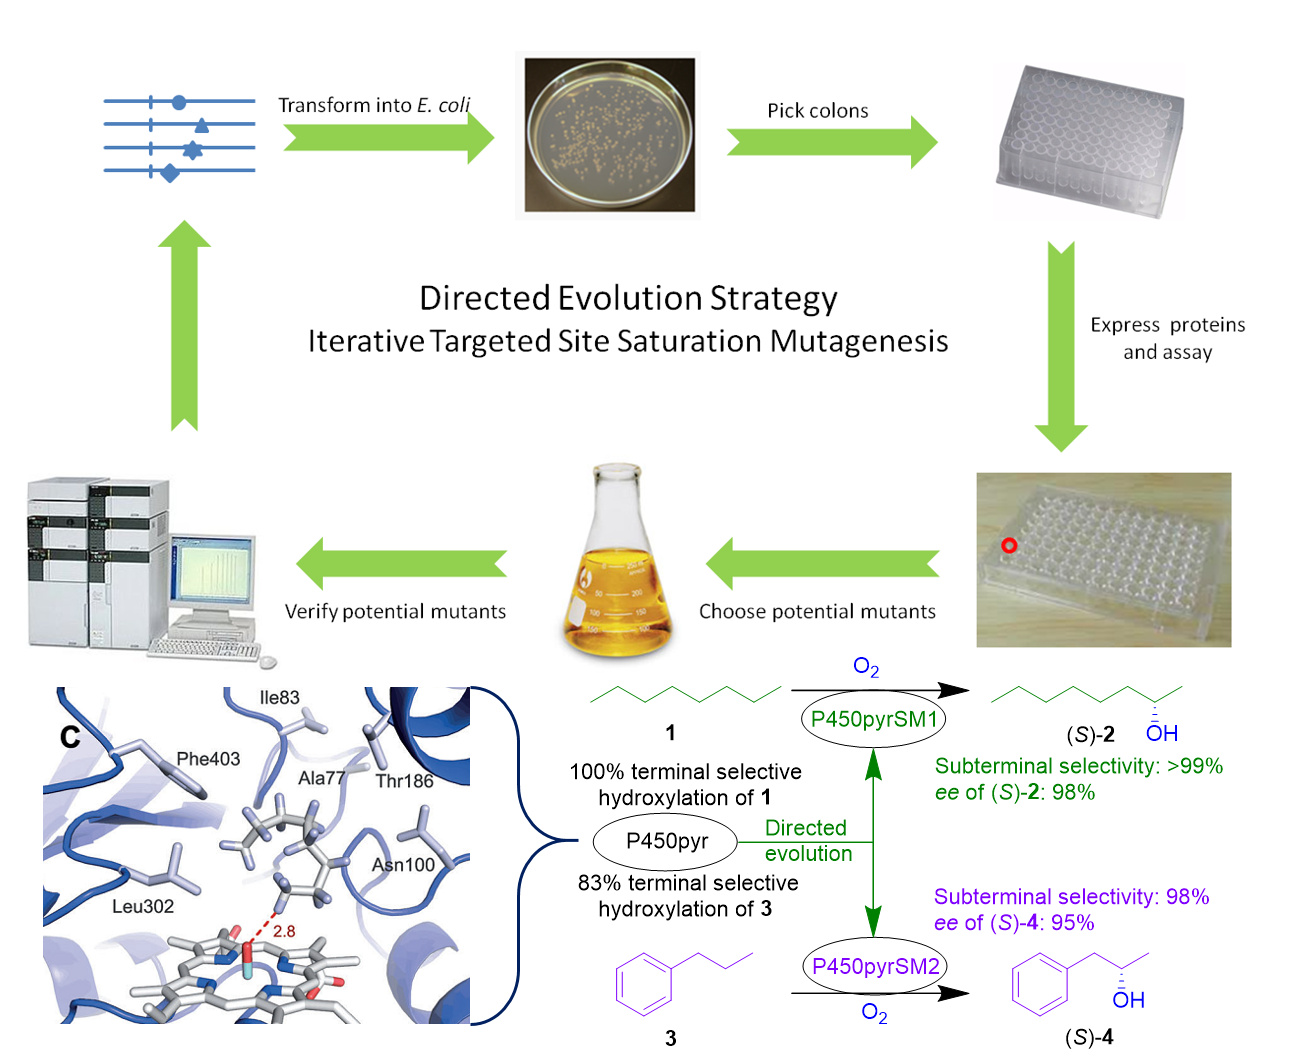 enzyme biocatalysis Our biocatalysis development services allow us to provide our customers with highly pure regio-, chemo- and enantioselective compounds.